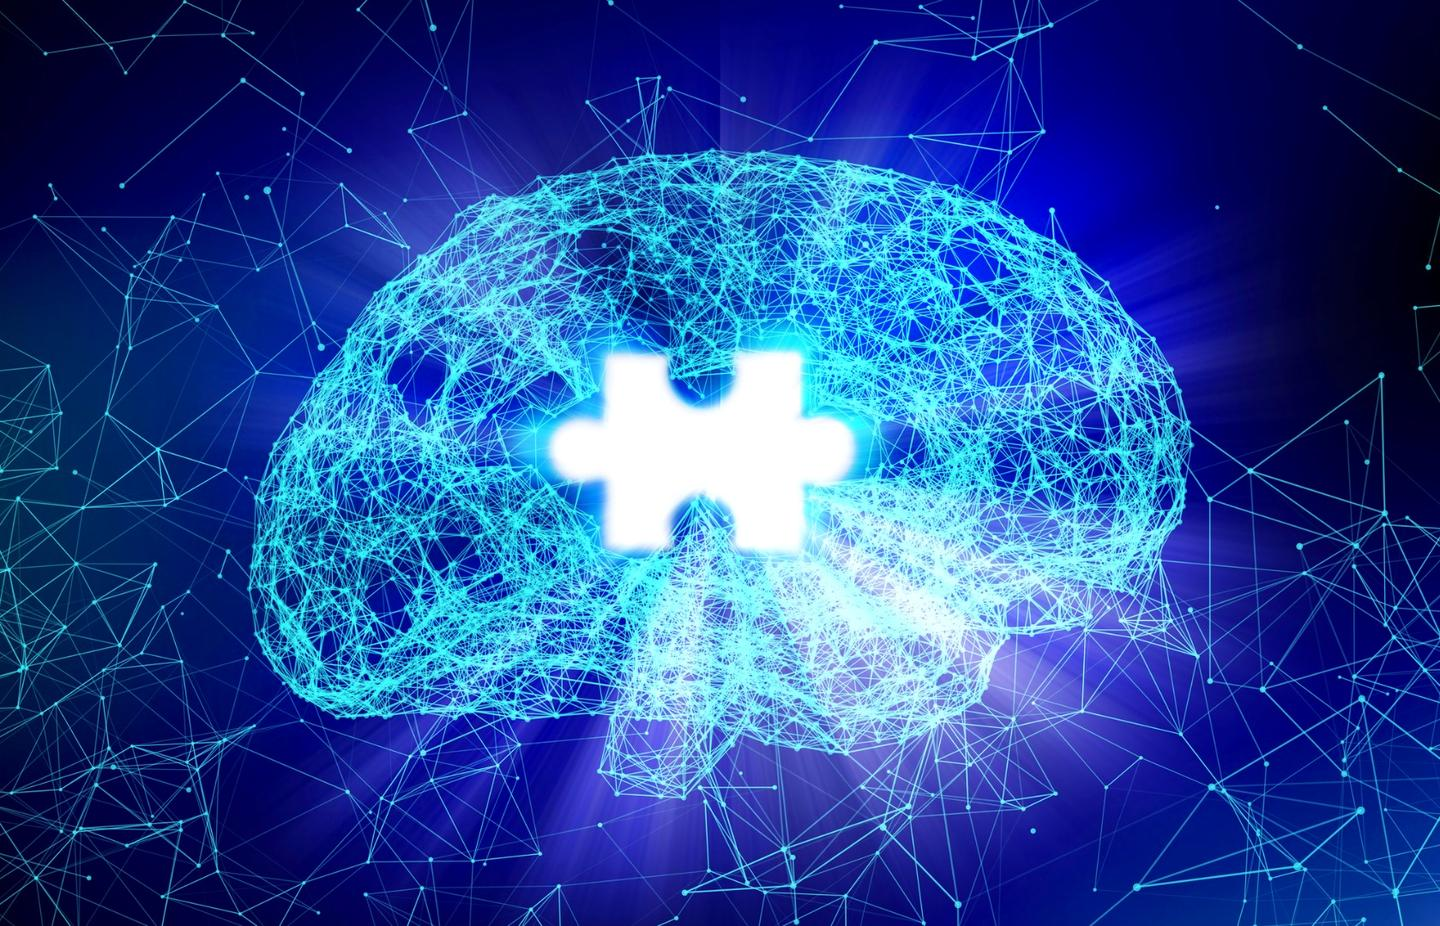 A newstudy hasoutlinednine different measures that can be used to identify Alzheimer's years before the onset of cognitive decline